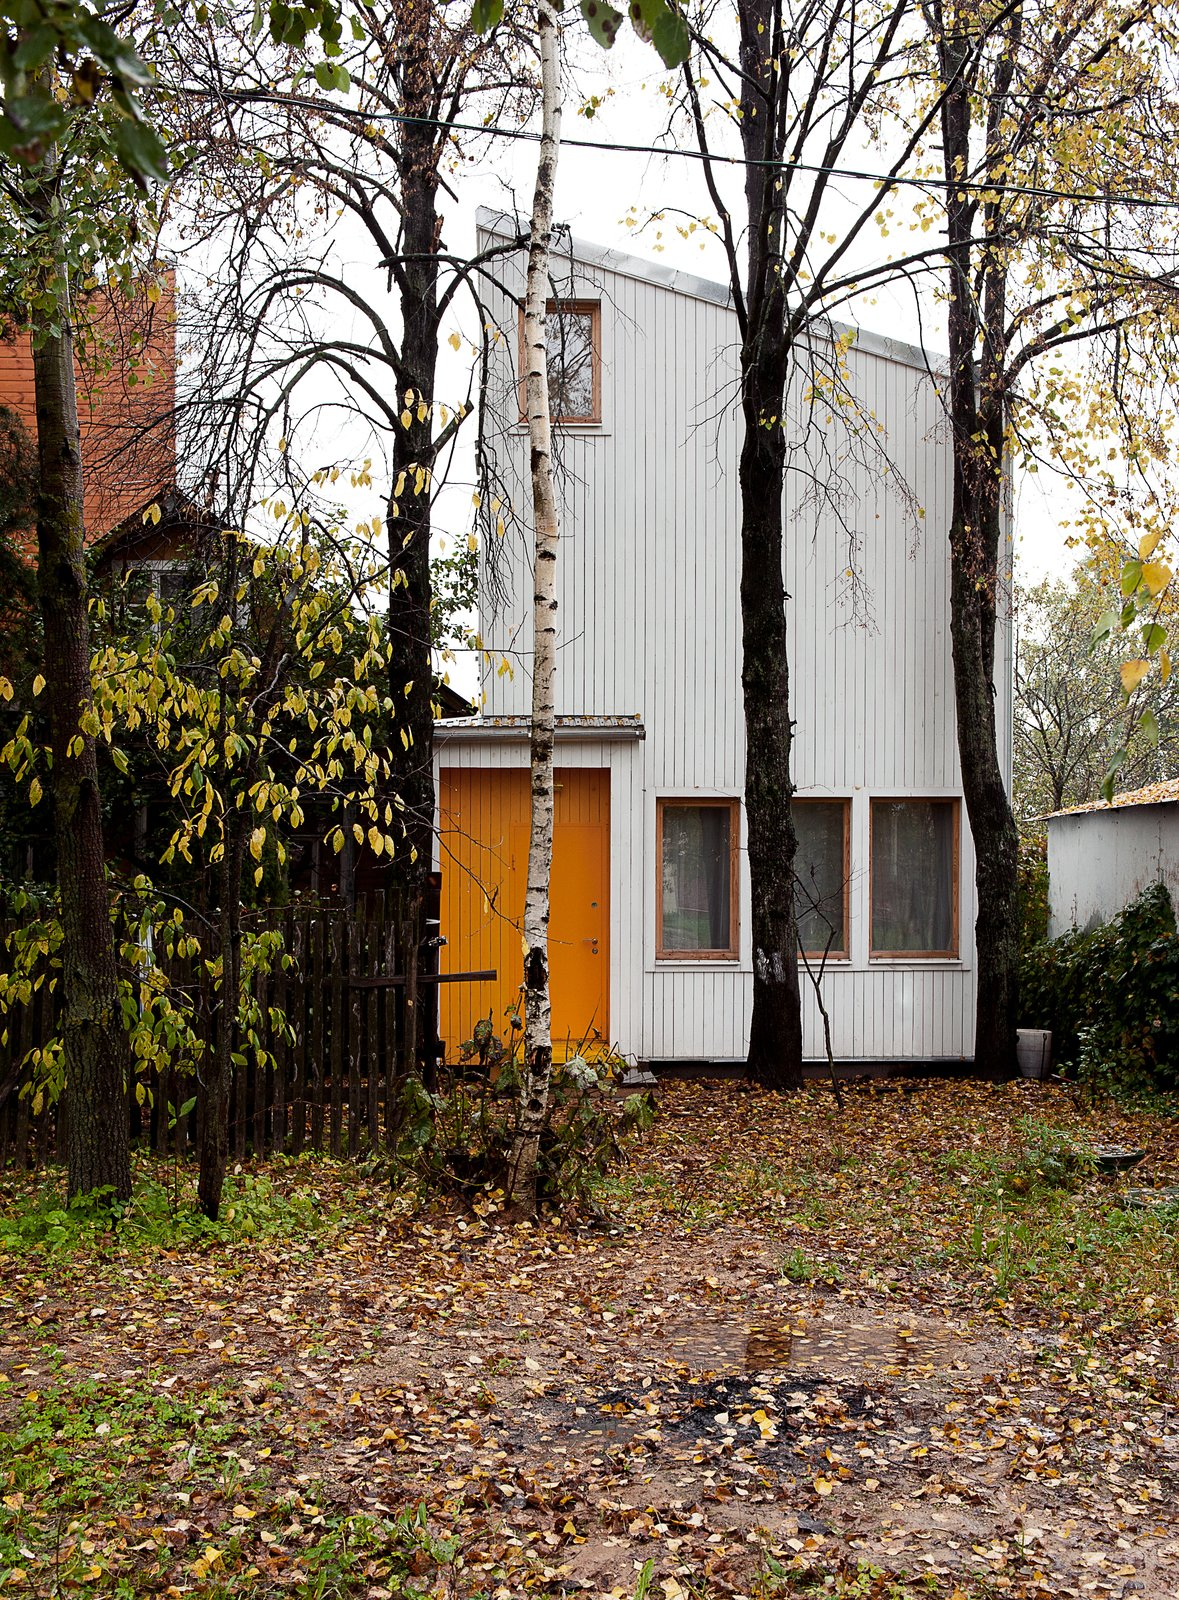 """""""Our goal was to construct a house with the lowest possible budget, while ensuring comfort and efficiency for the residents inside,"""" says Sergey Kolchin, founder of Le Atelier. The architects accented the home's front door by painting it yellow, harmonizing the structure with the surrounding forest.  A Compact Home in Moscow Built on the Lowest Possible Budget by Tiffany Jow"""